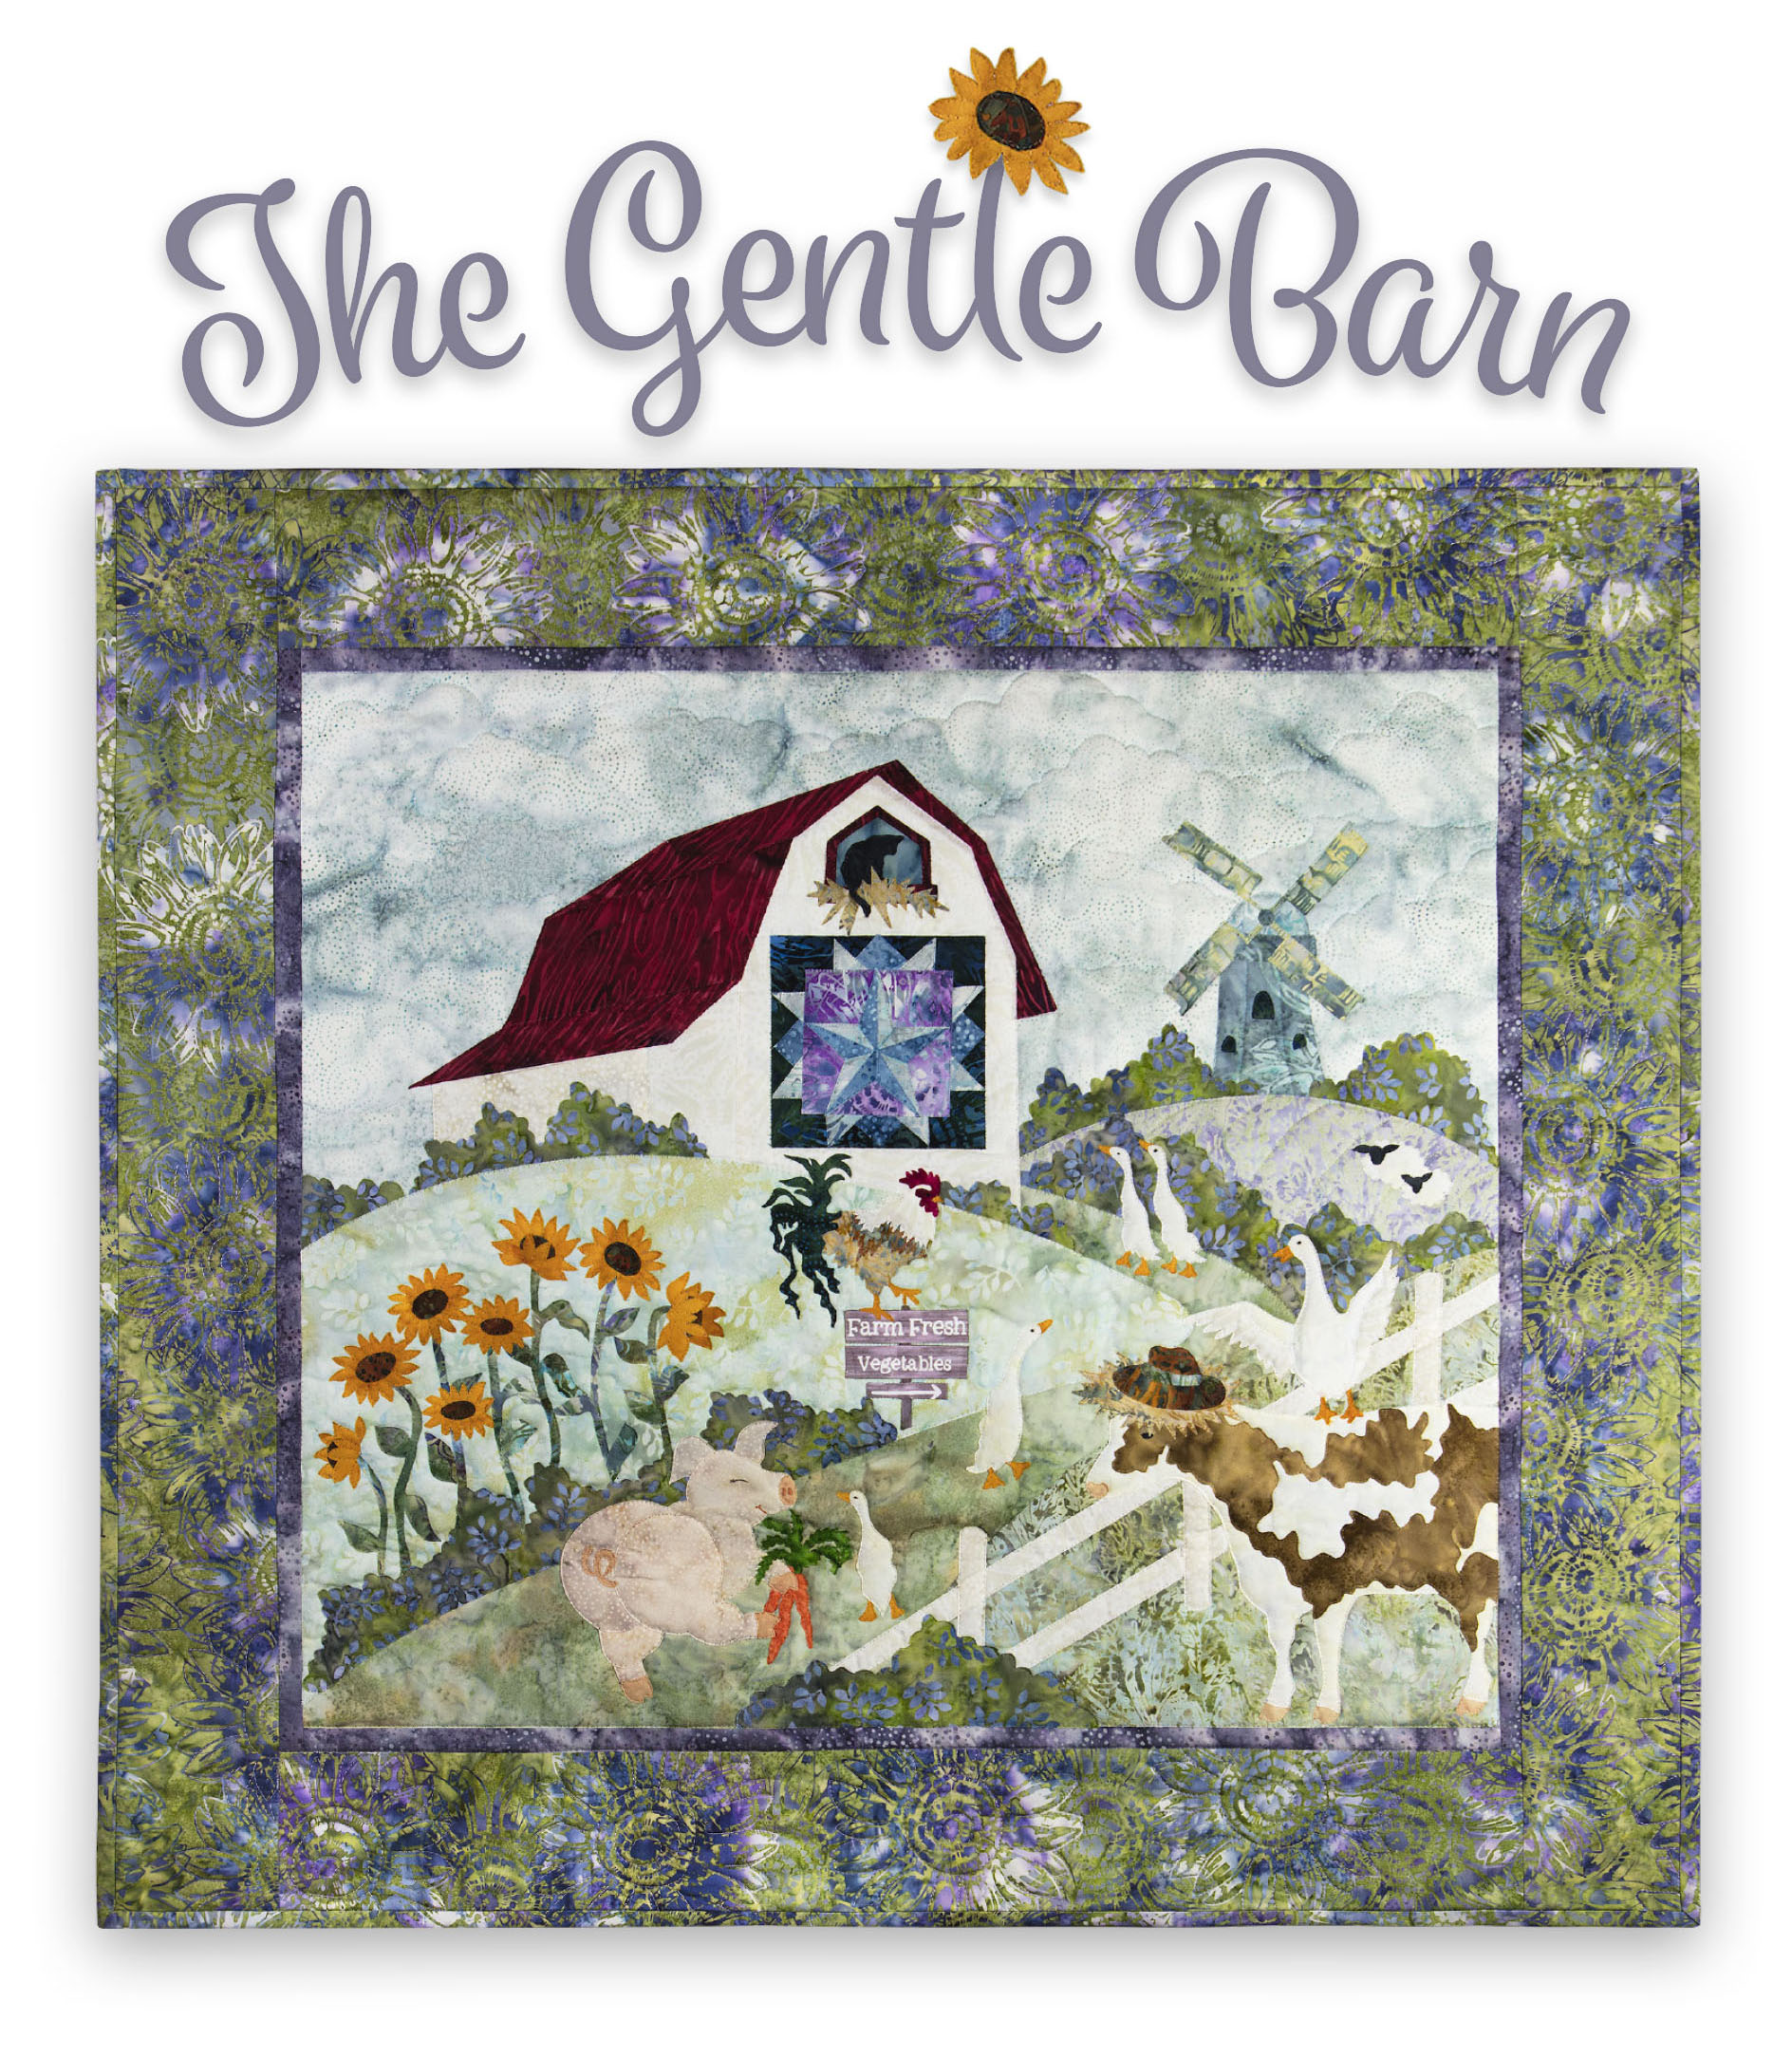 The Gentle Barn